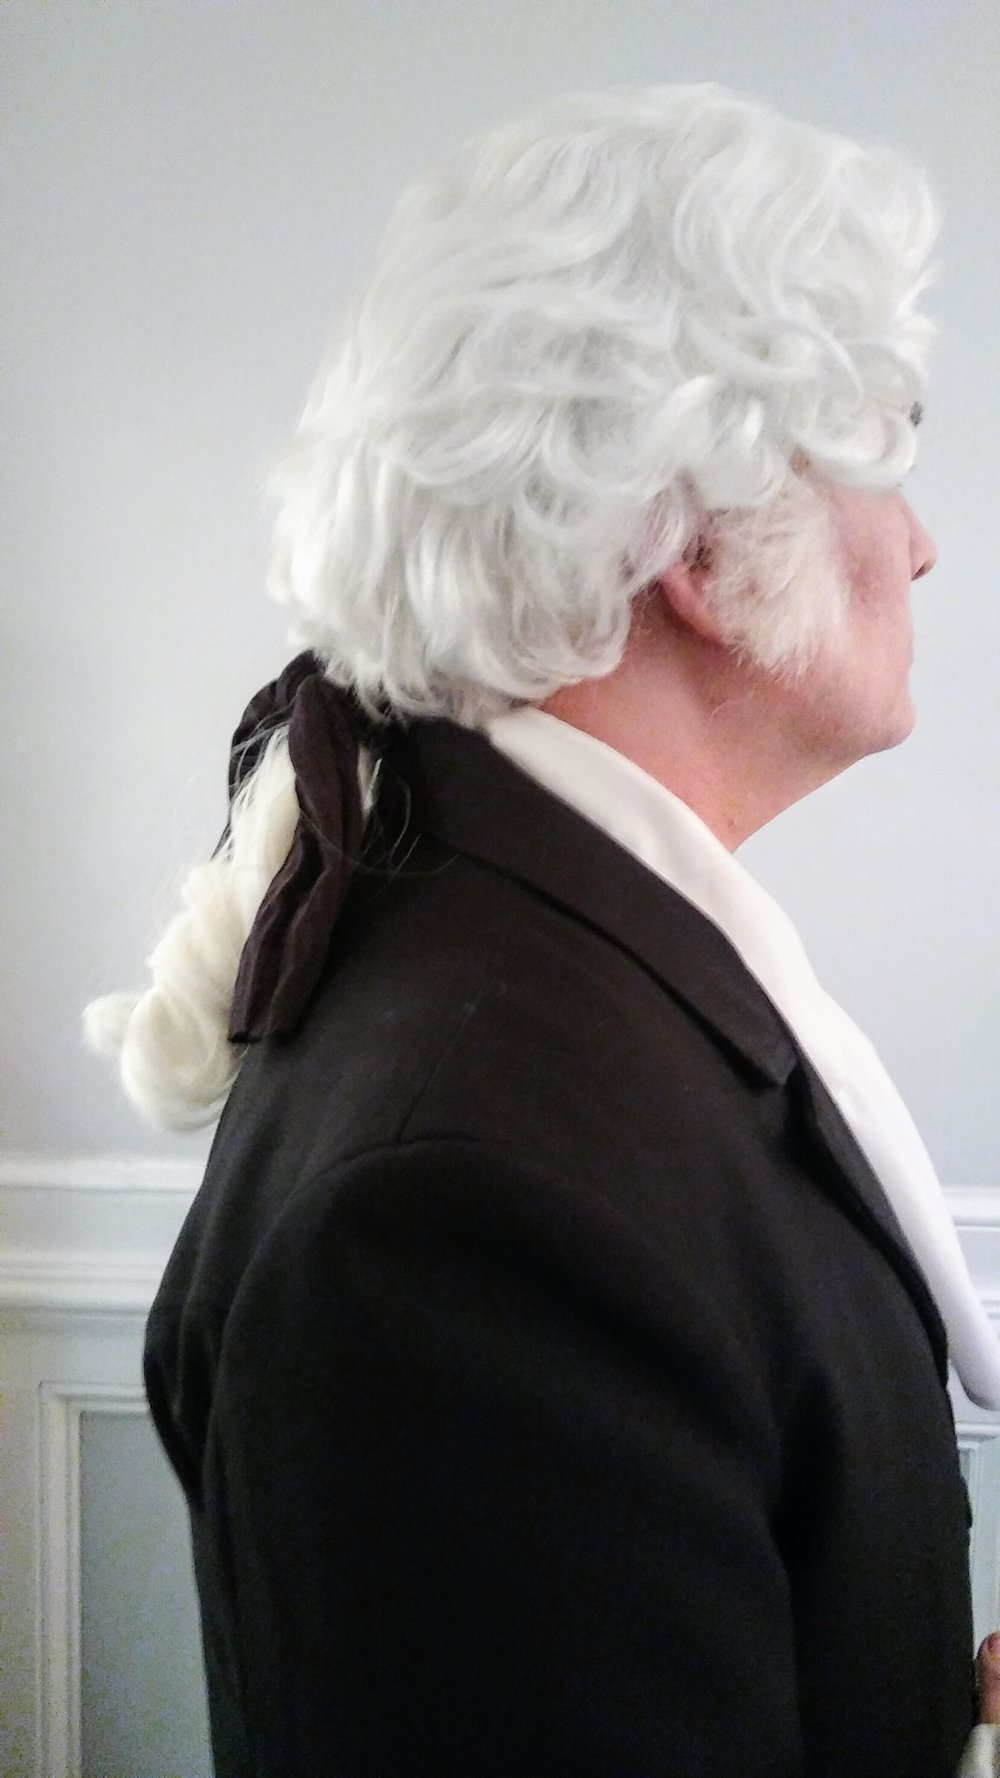 There was a lack of colonial style wigs available because of the popular Hamilton musical. I created this from 2 different wigs for our George Washington character. DEADZ by the Migos, 2017.